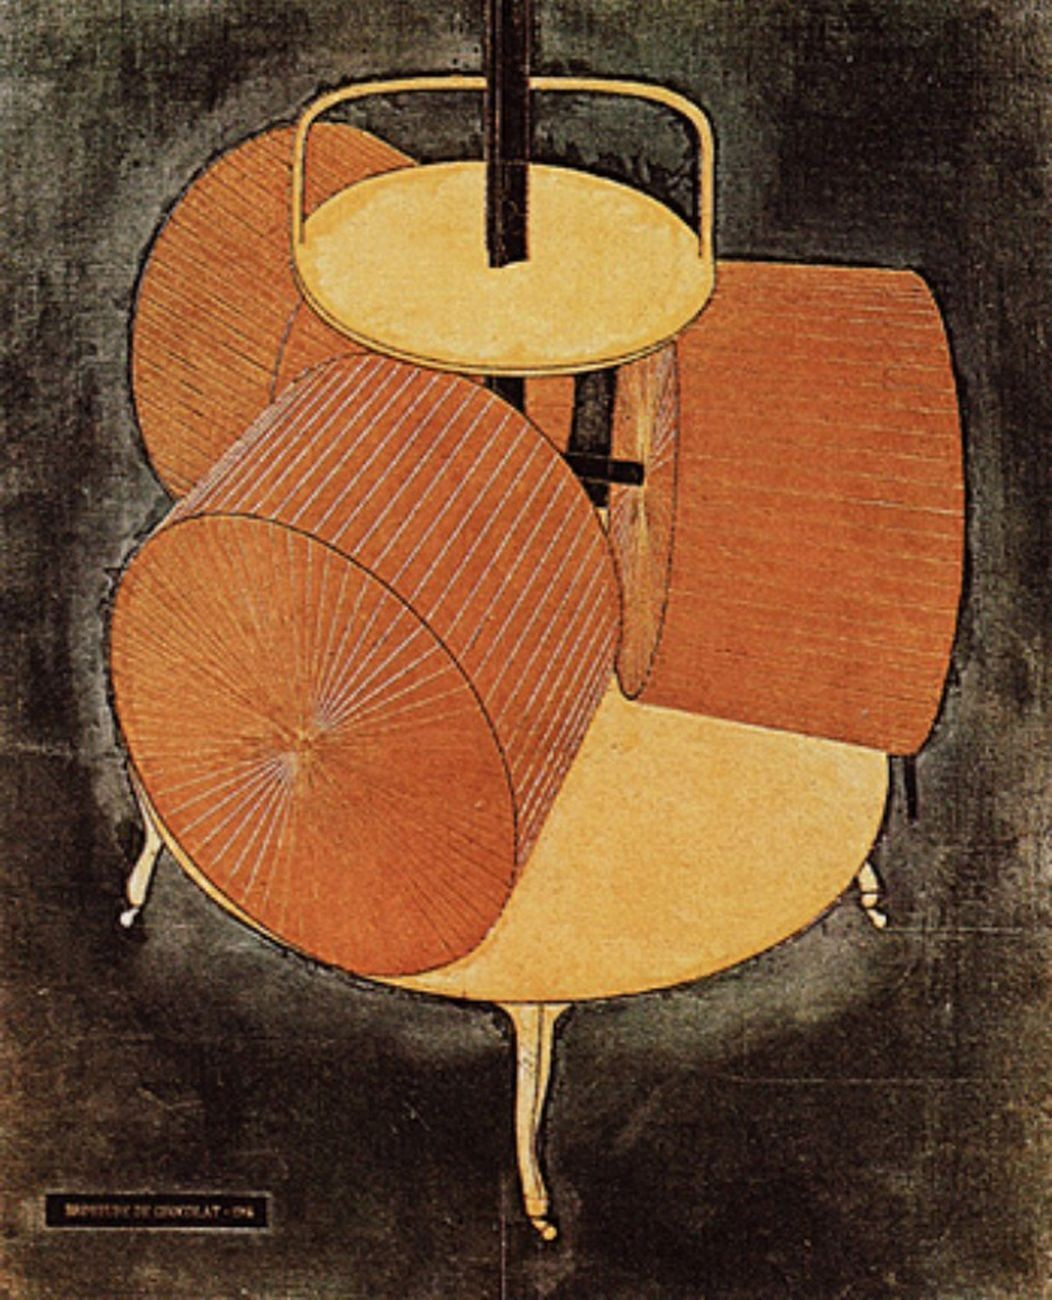 Marcel Duchamp Broyeuse de Chocolat 1913. Philadelphia The Philadelphia Museum of Art